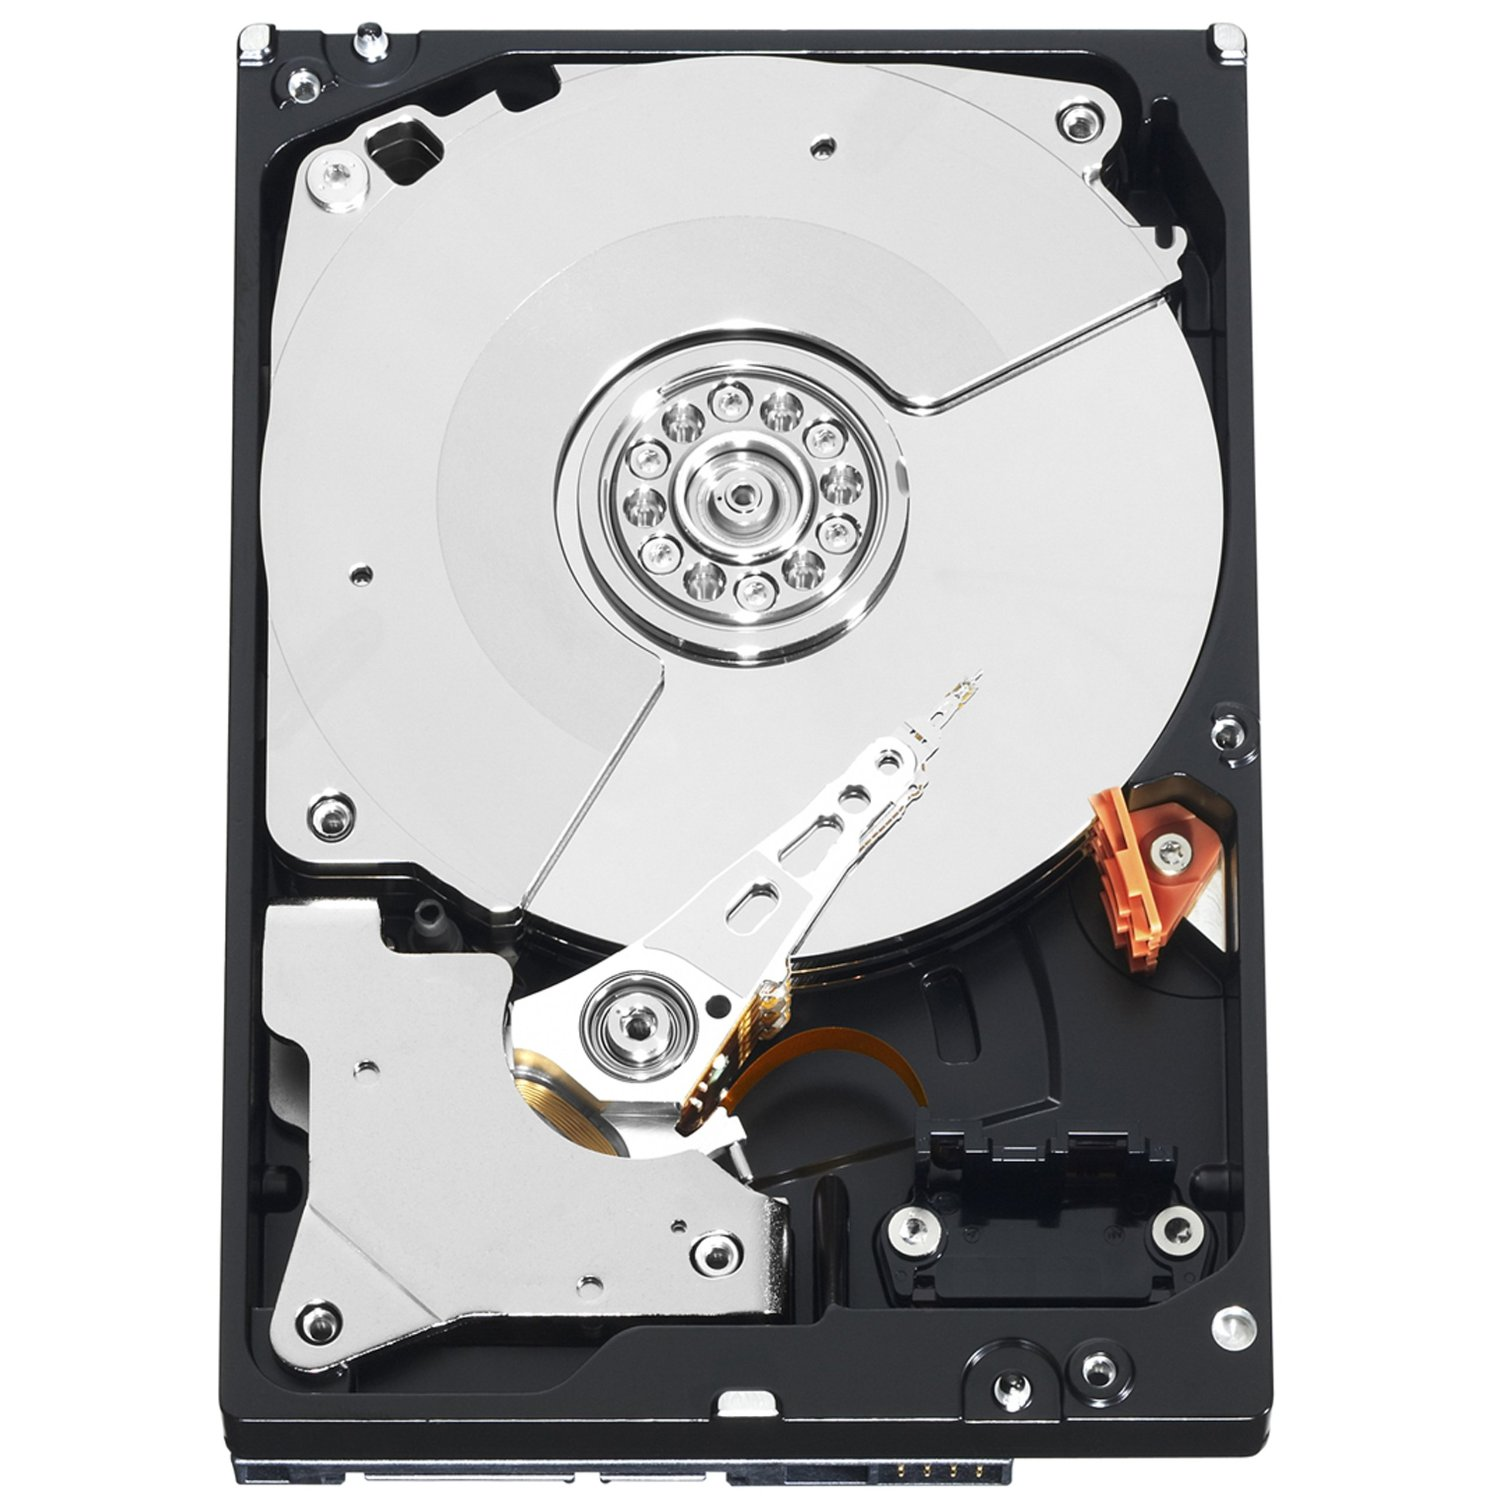 Best Hard Drives 2011 – 2012